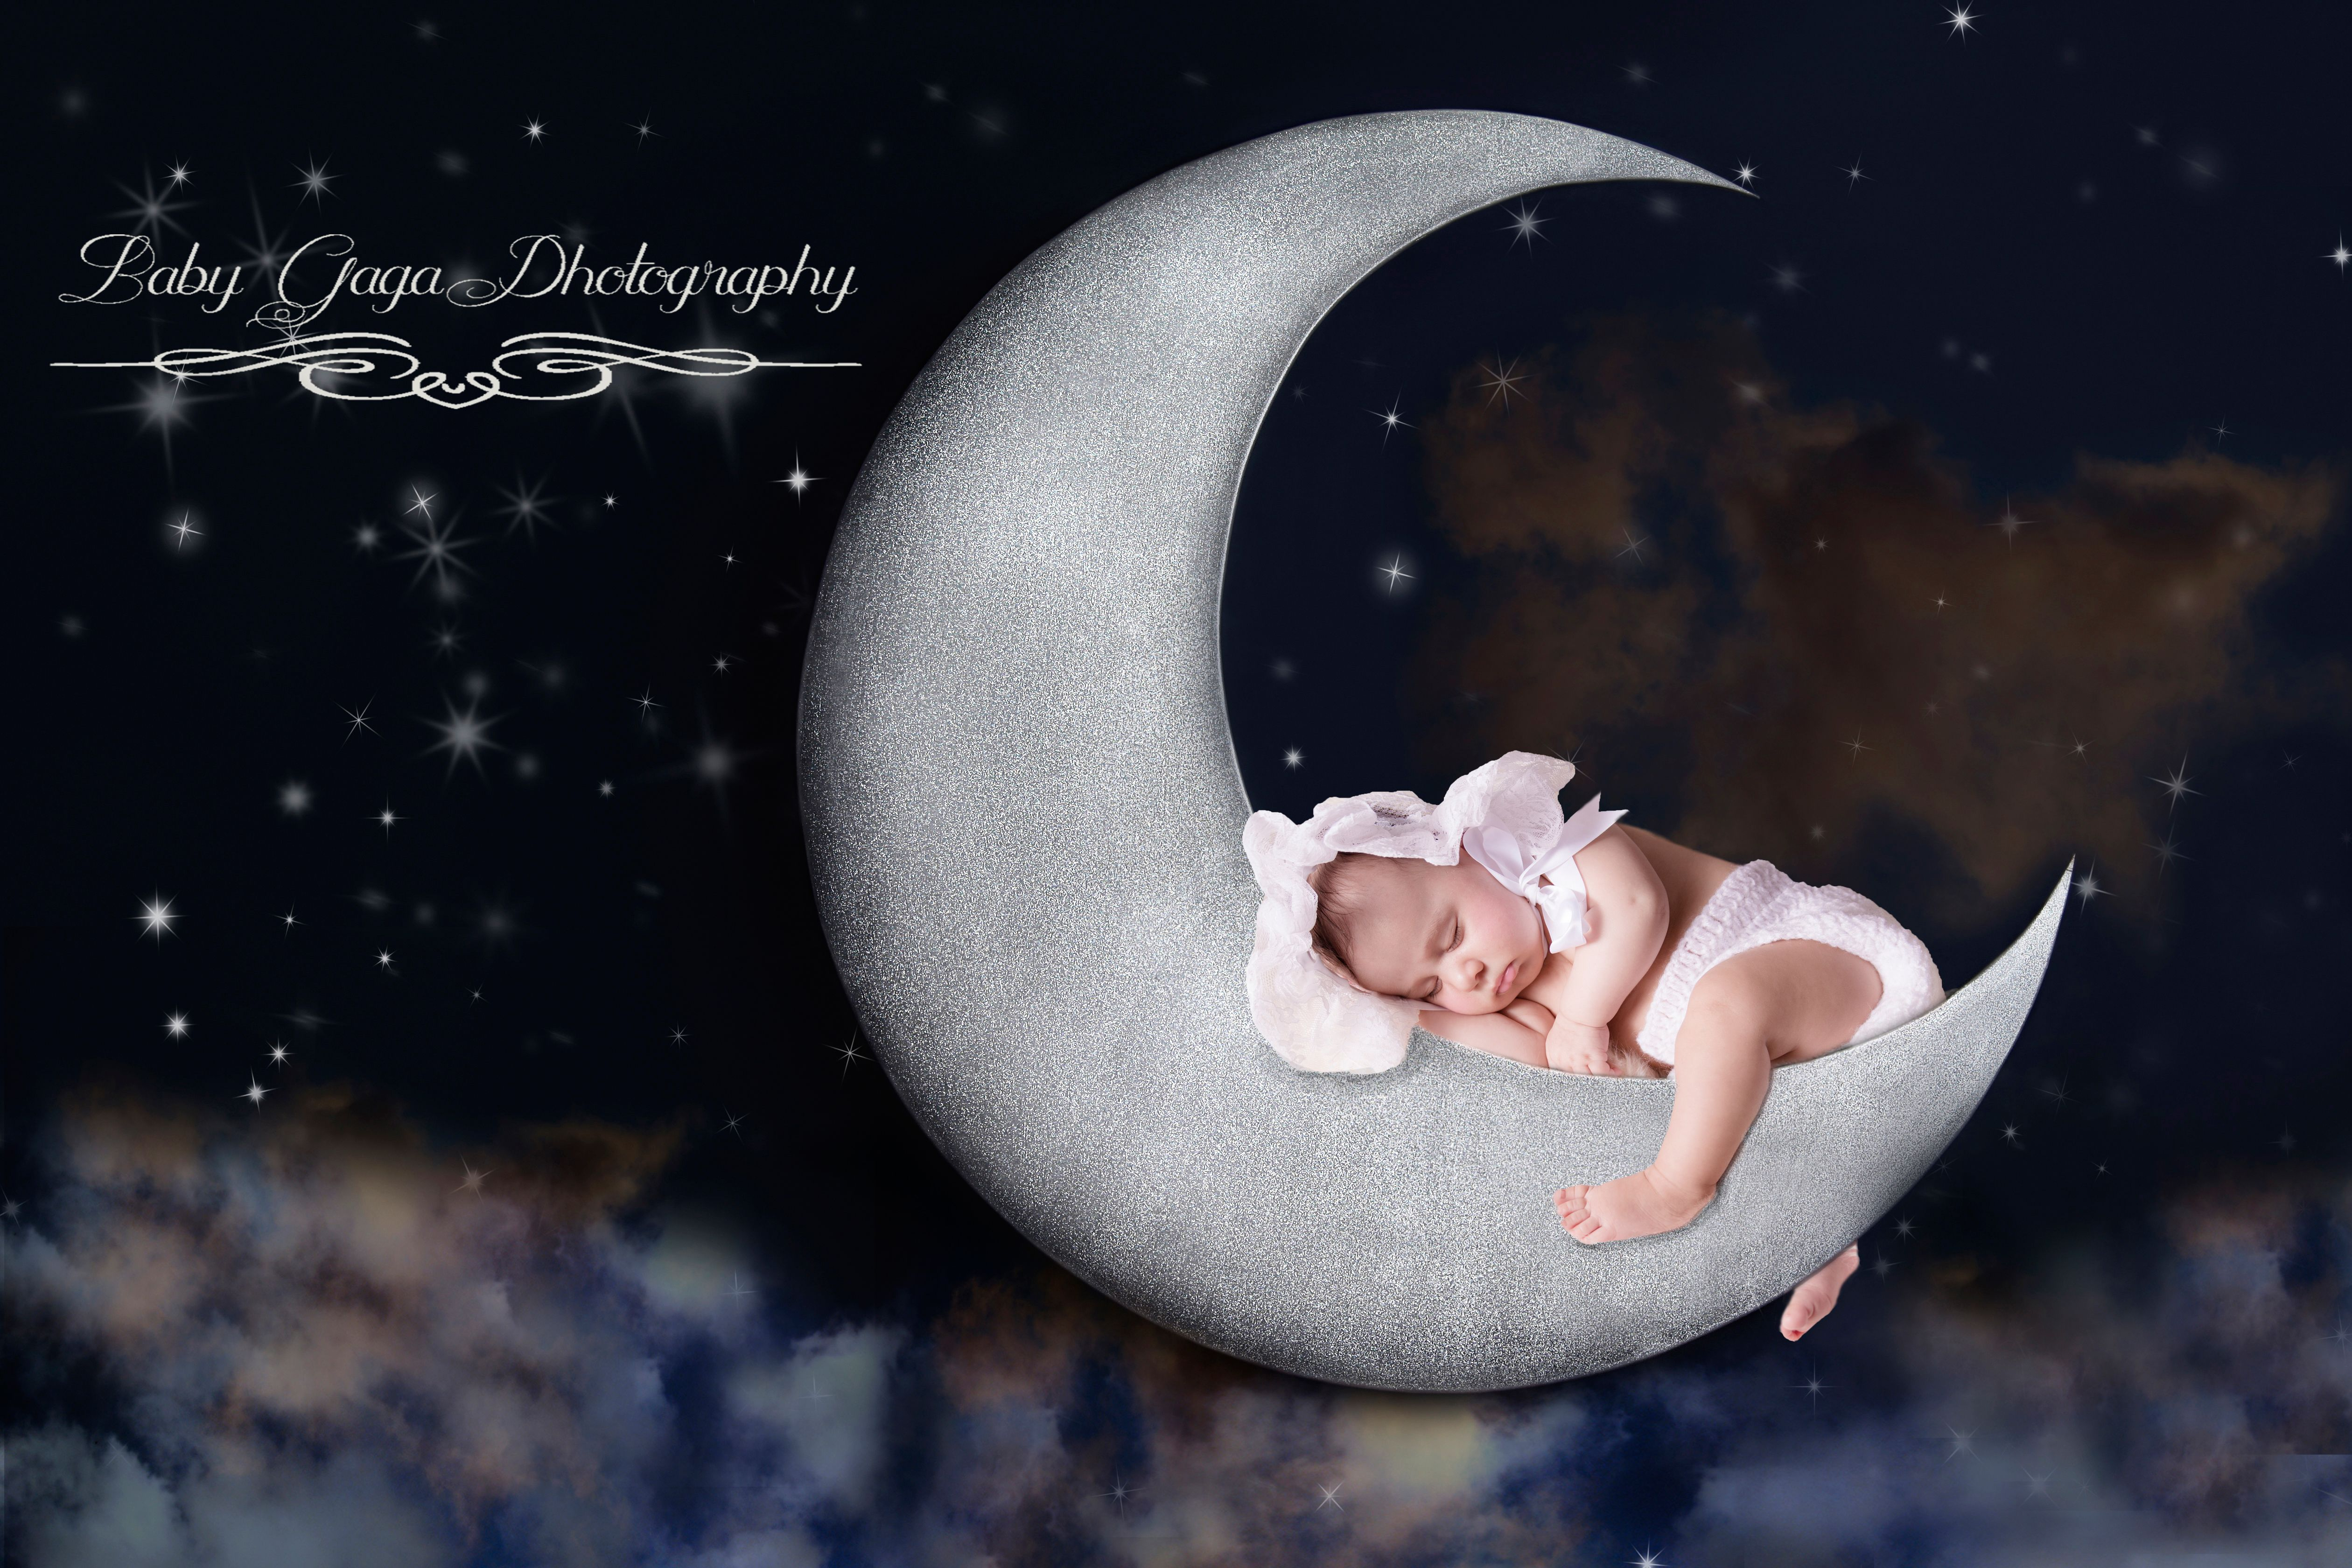 Let Baby Gaga Photography provide you with the cutest portrait of your baby sleeping on the moon.  Call today 551-206-2869.